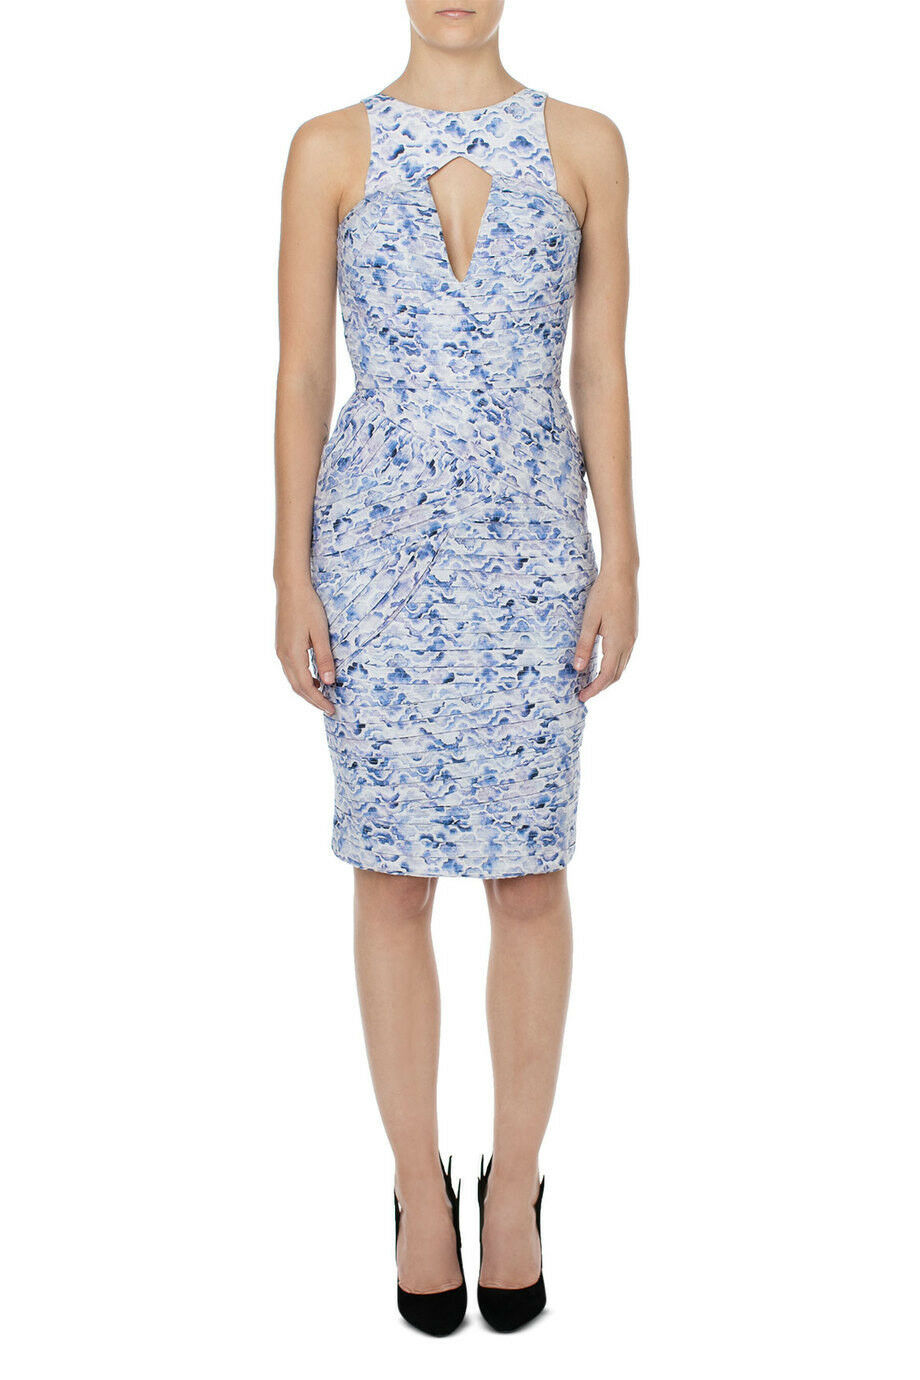 NEW Aje Windsor Pencil Dress blueebell Print Size 6 RRP